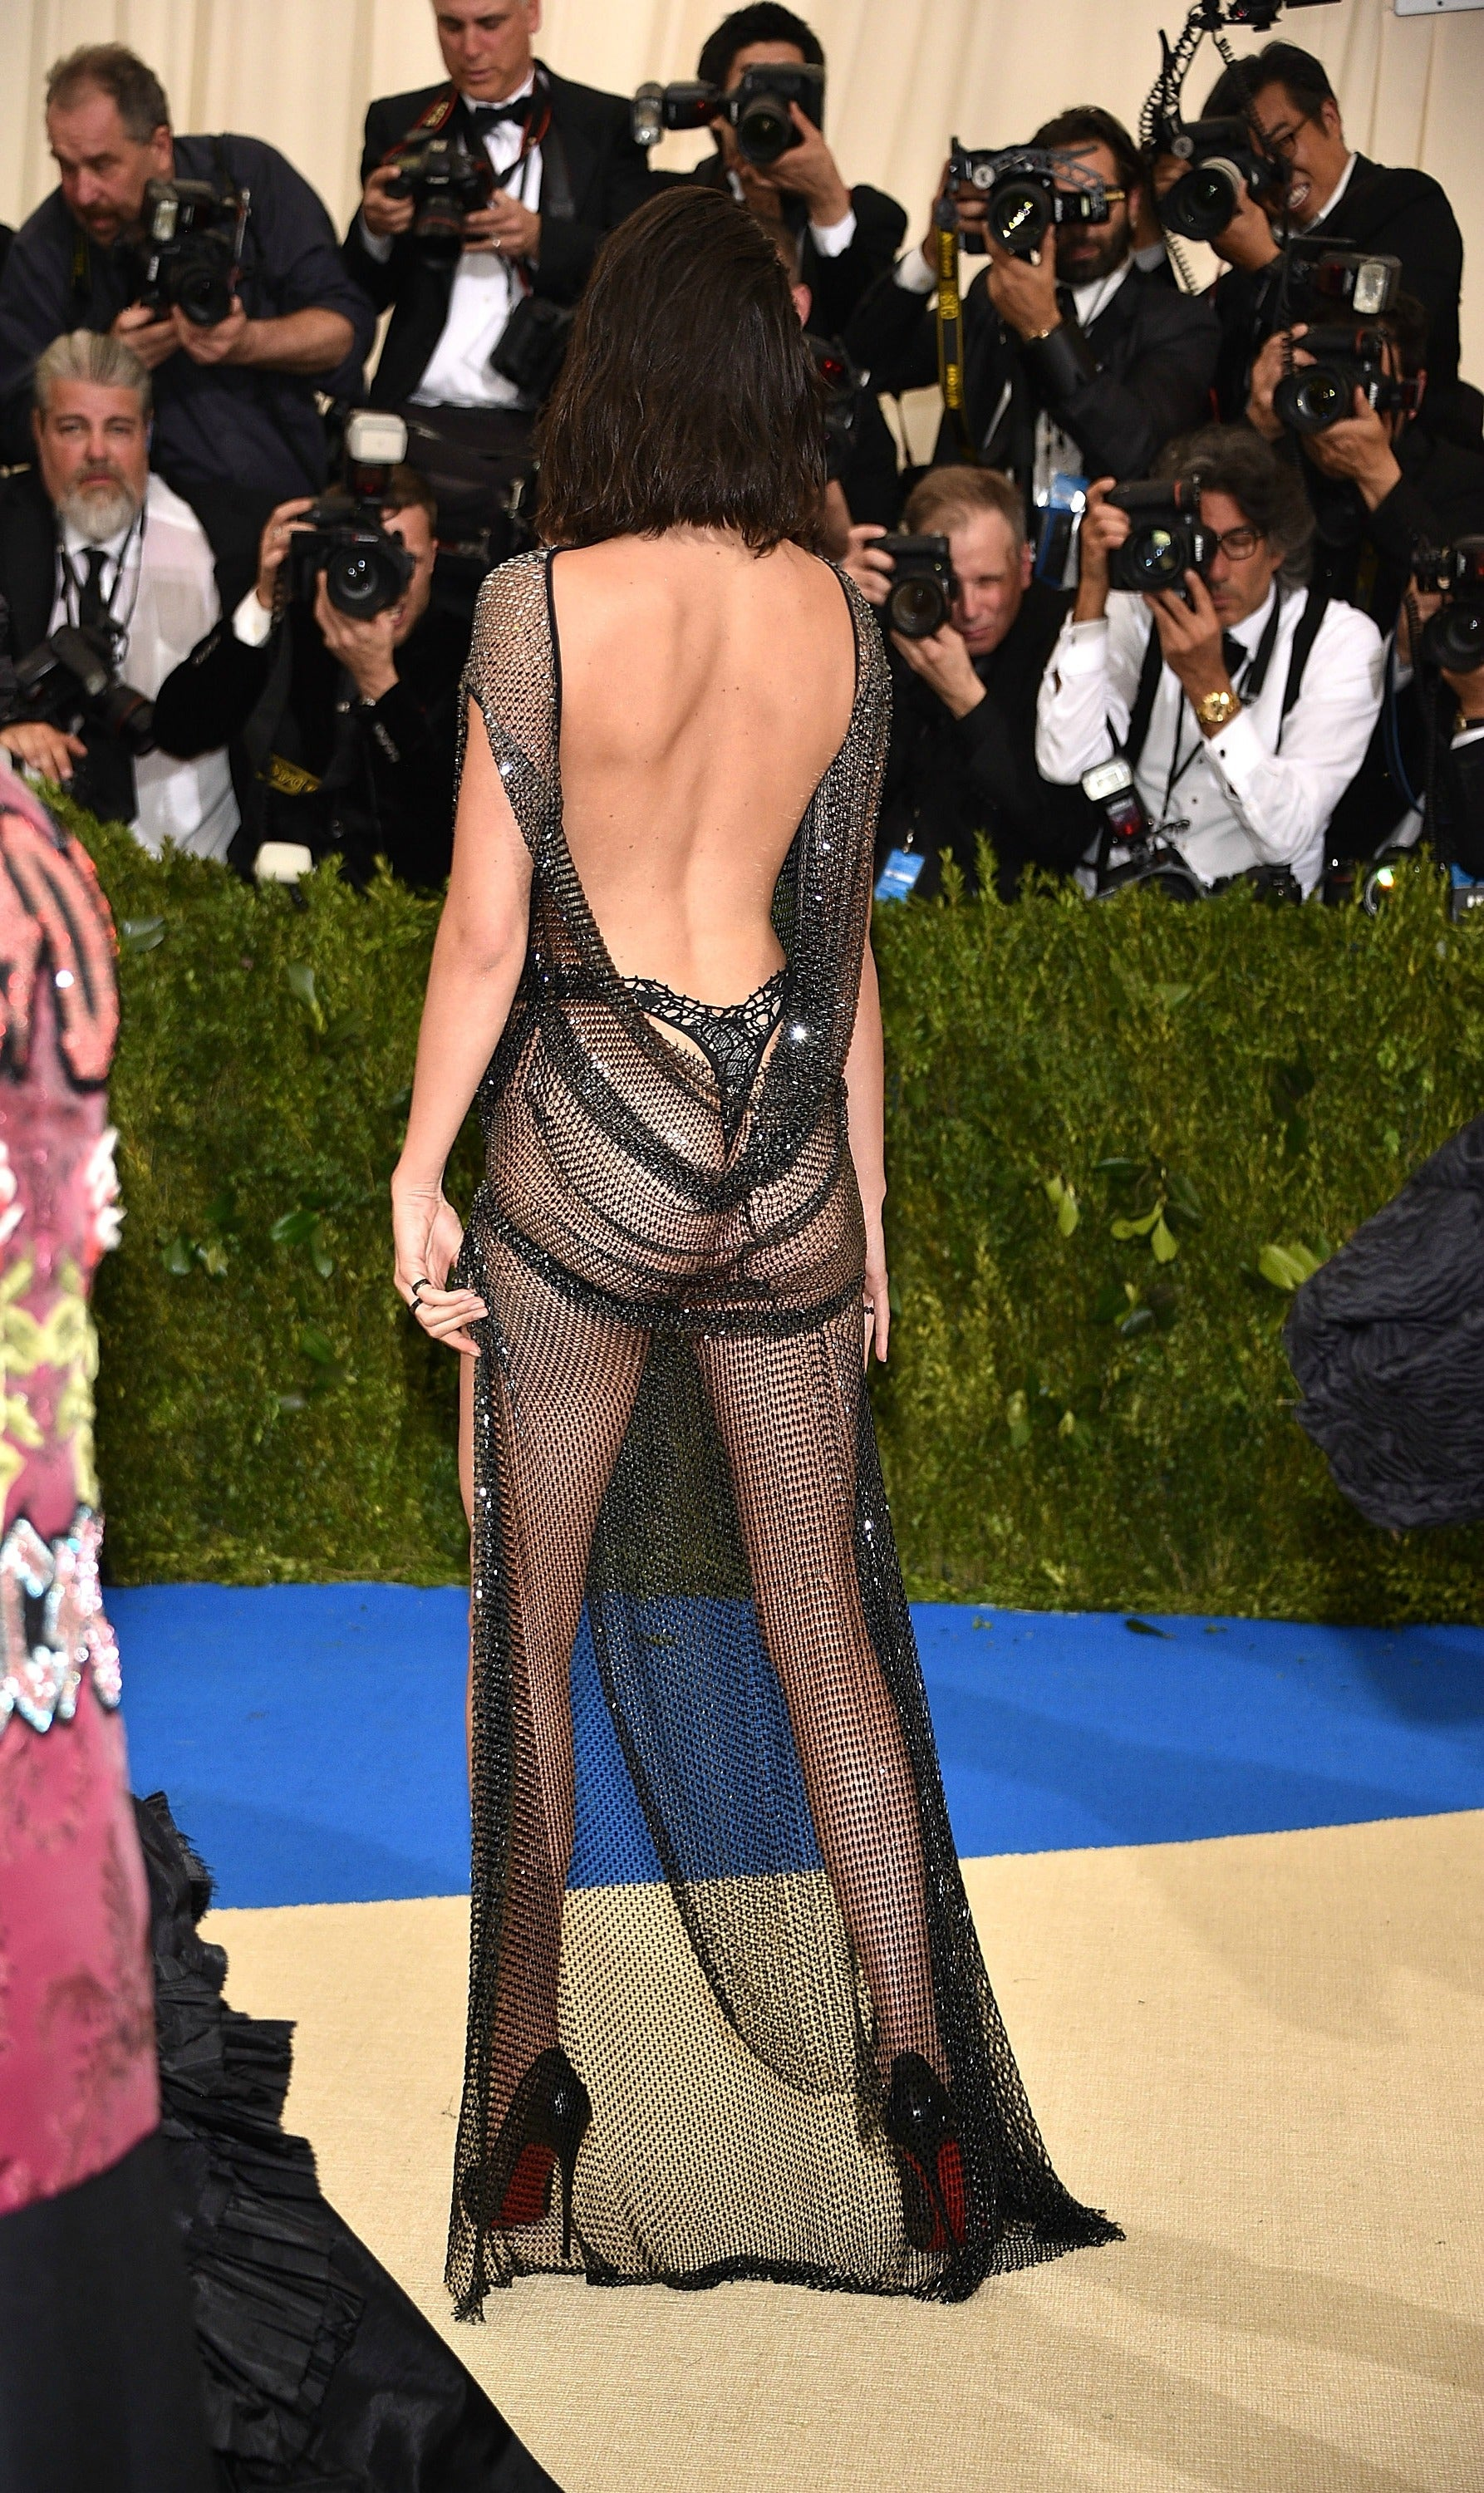 Kendall Jenner Shows Off Bare Butt in Sheer Dress at the Met Gala ...